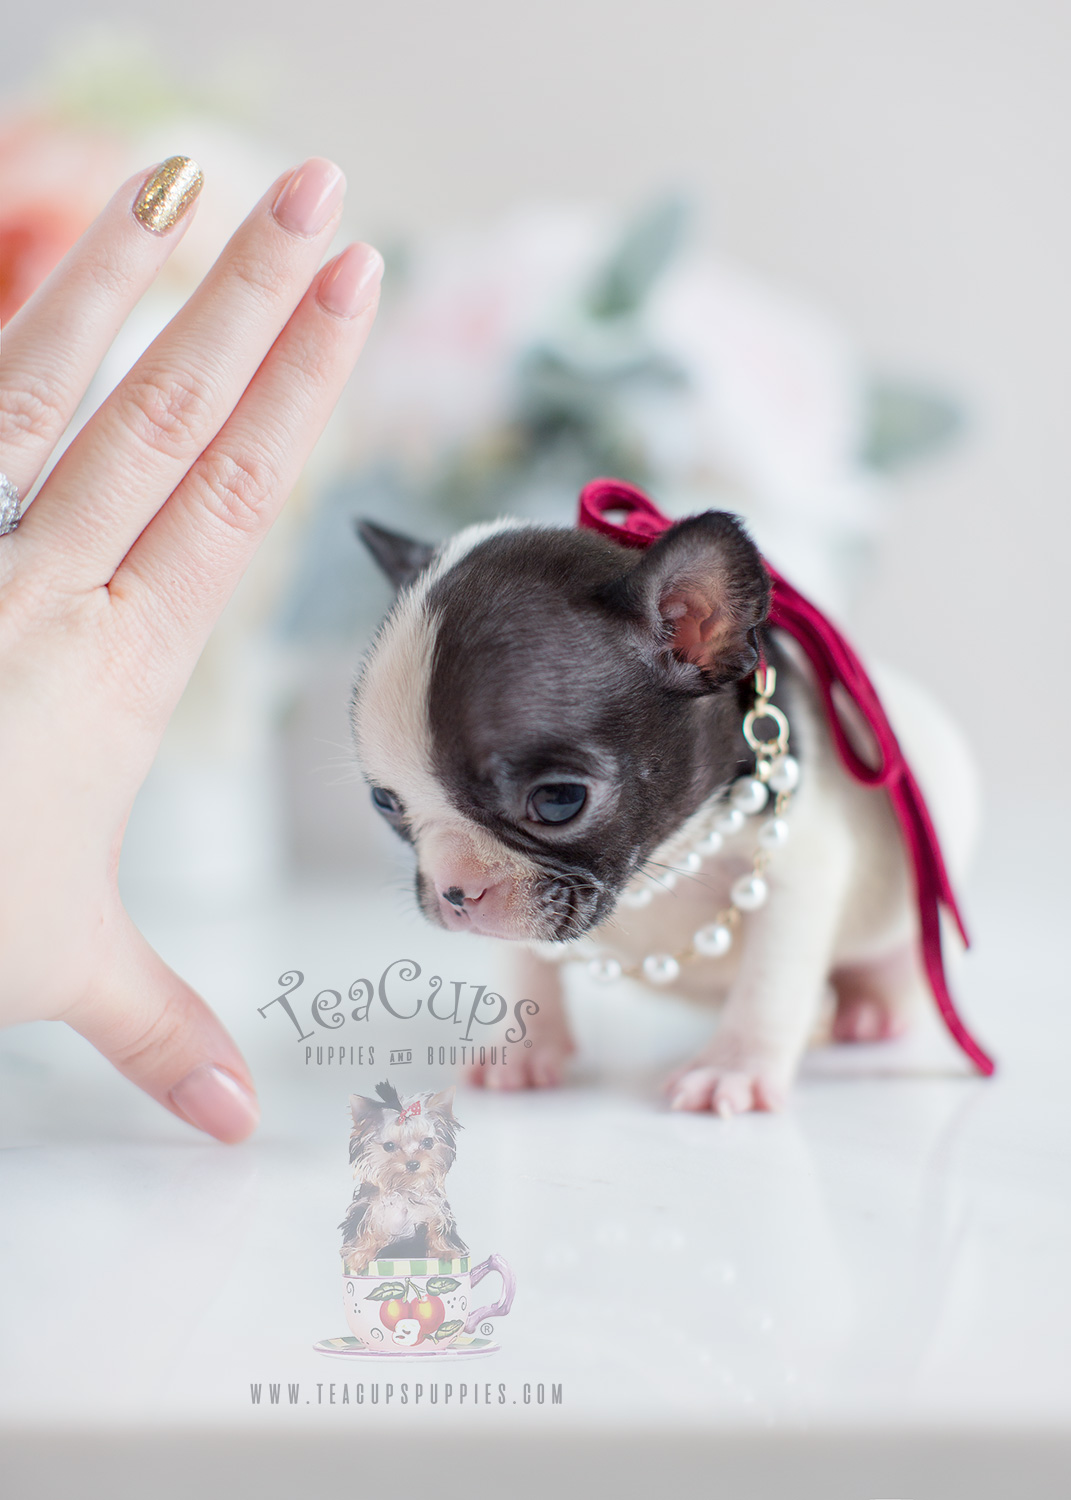 Teacup Puppies: Tiny French Bulldog Puppy For Sale